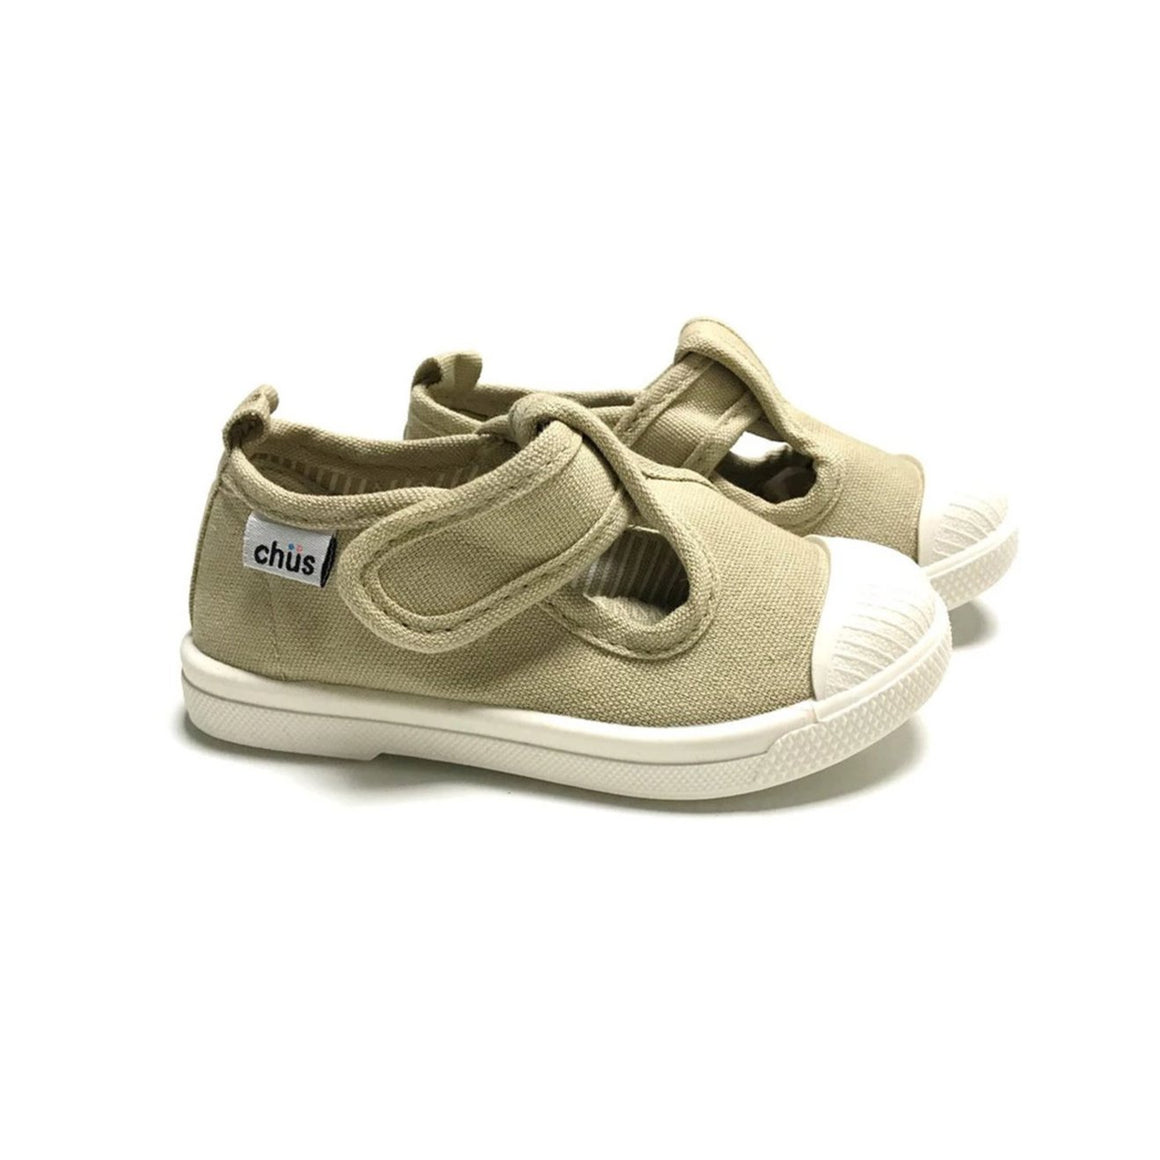 Chus Shoes | Chus Chris Canvas Velcro Sneaker in Khaki